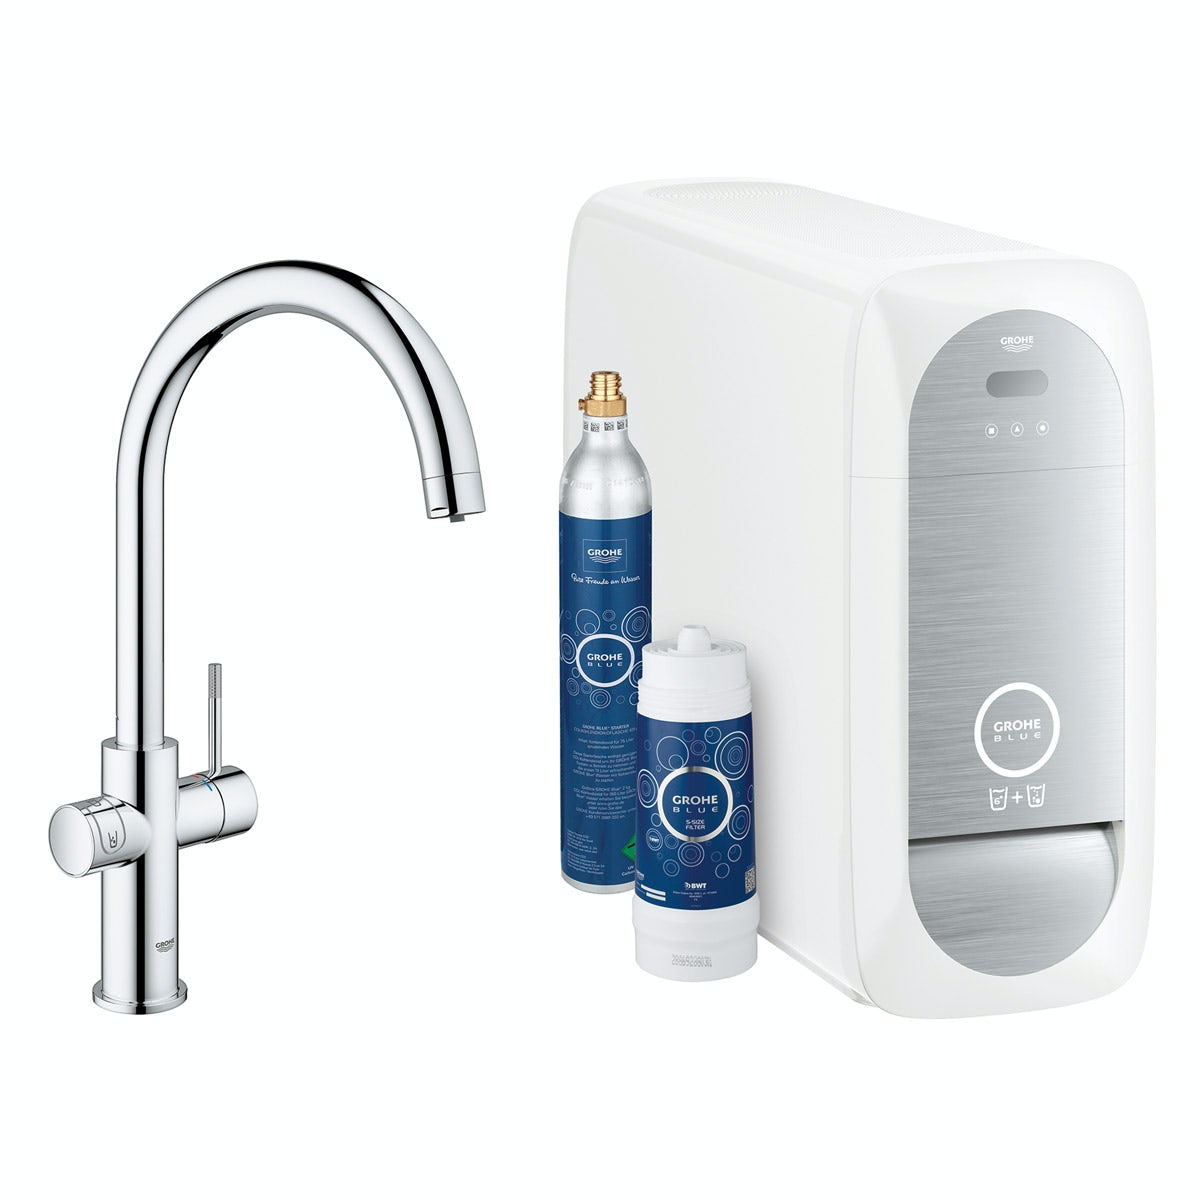 Grohe Blue Alternative grohe blue home c spout kitchen tap victoriaplum com